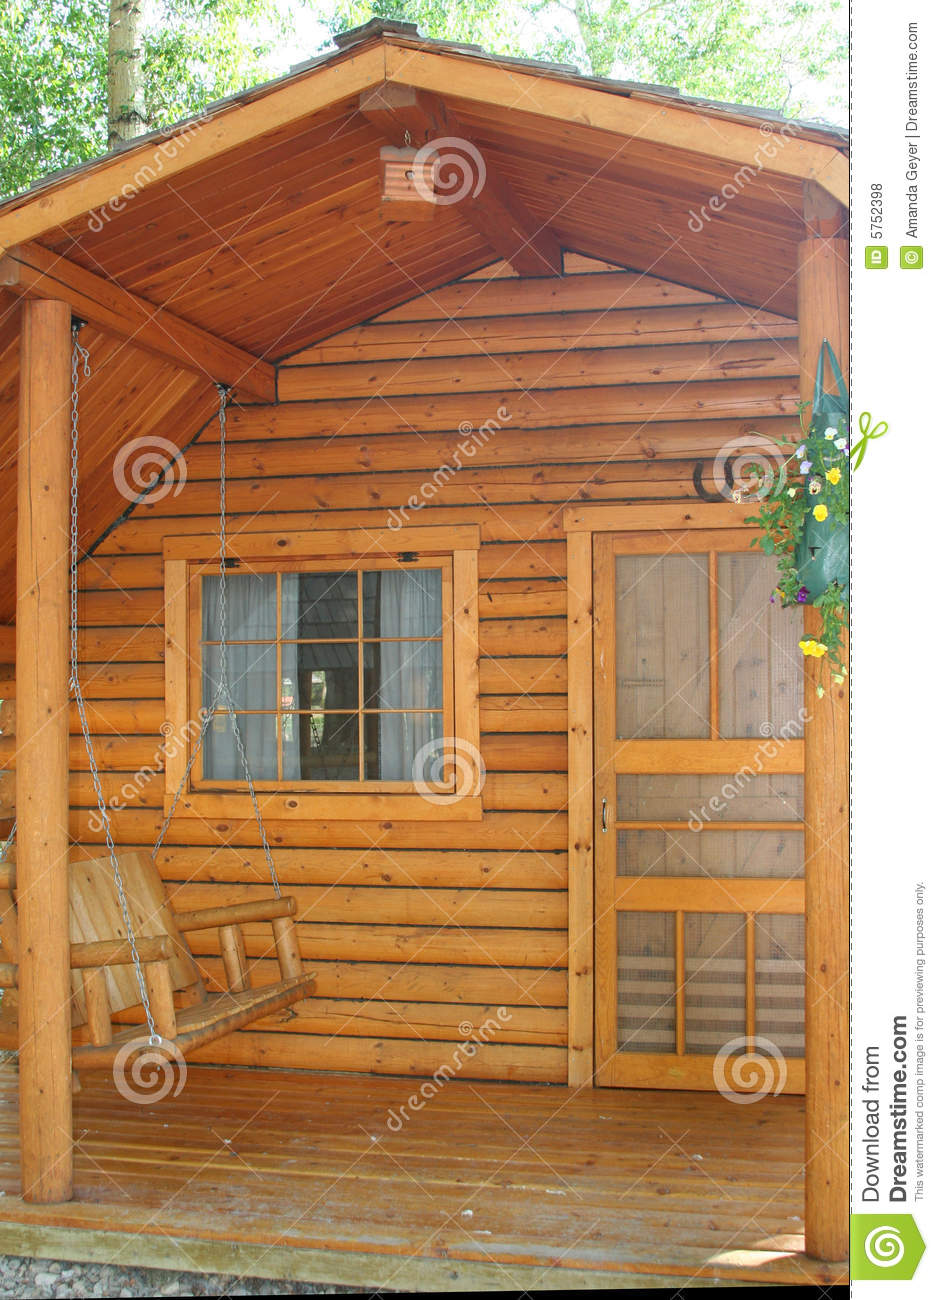 Small Wood Cabin Royalty Free Stock Photos Image 5752398